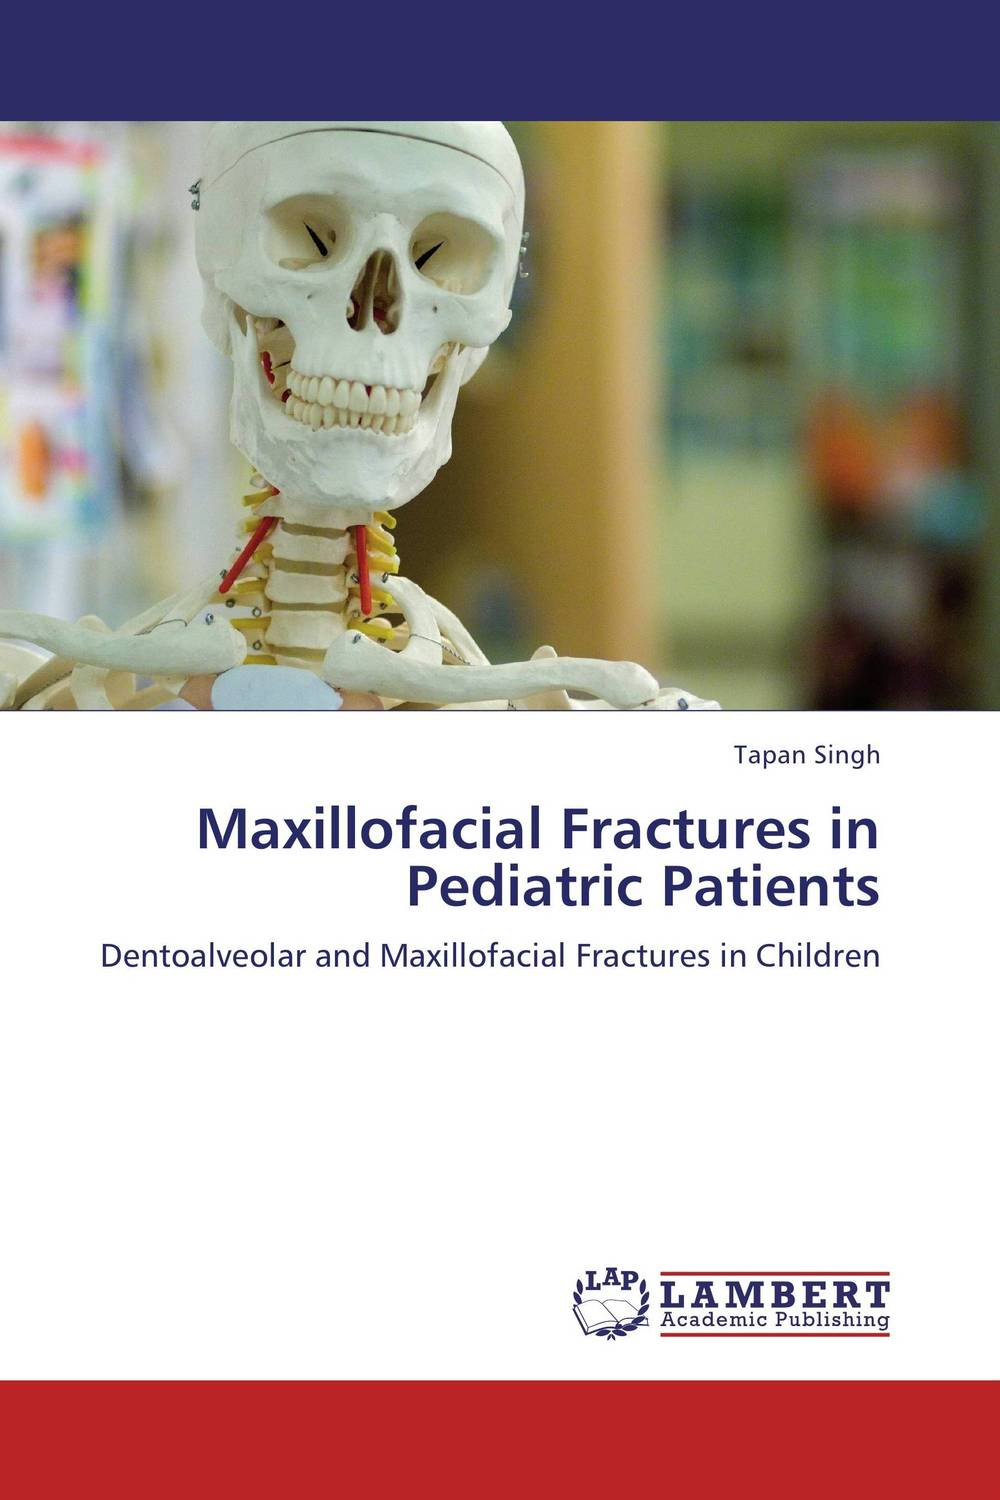 цена на Maxillofacial Fractures in Pediatric Patients